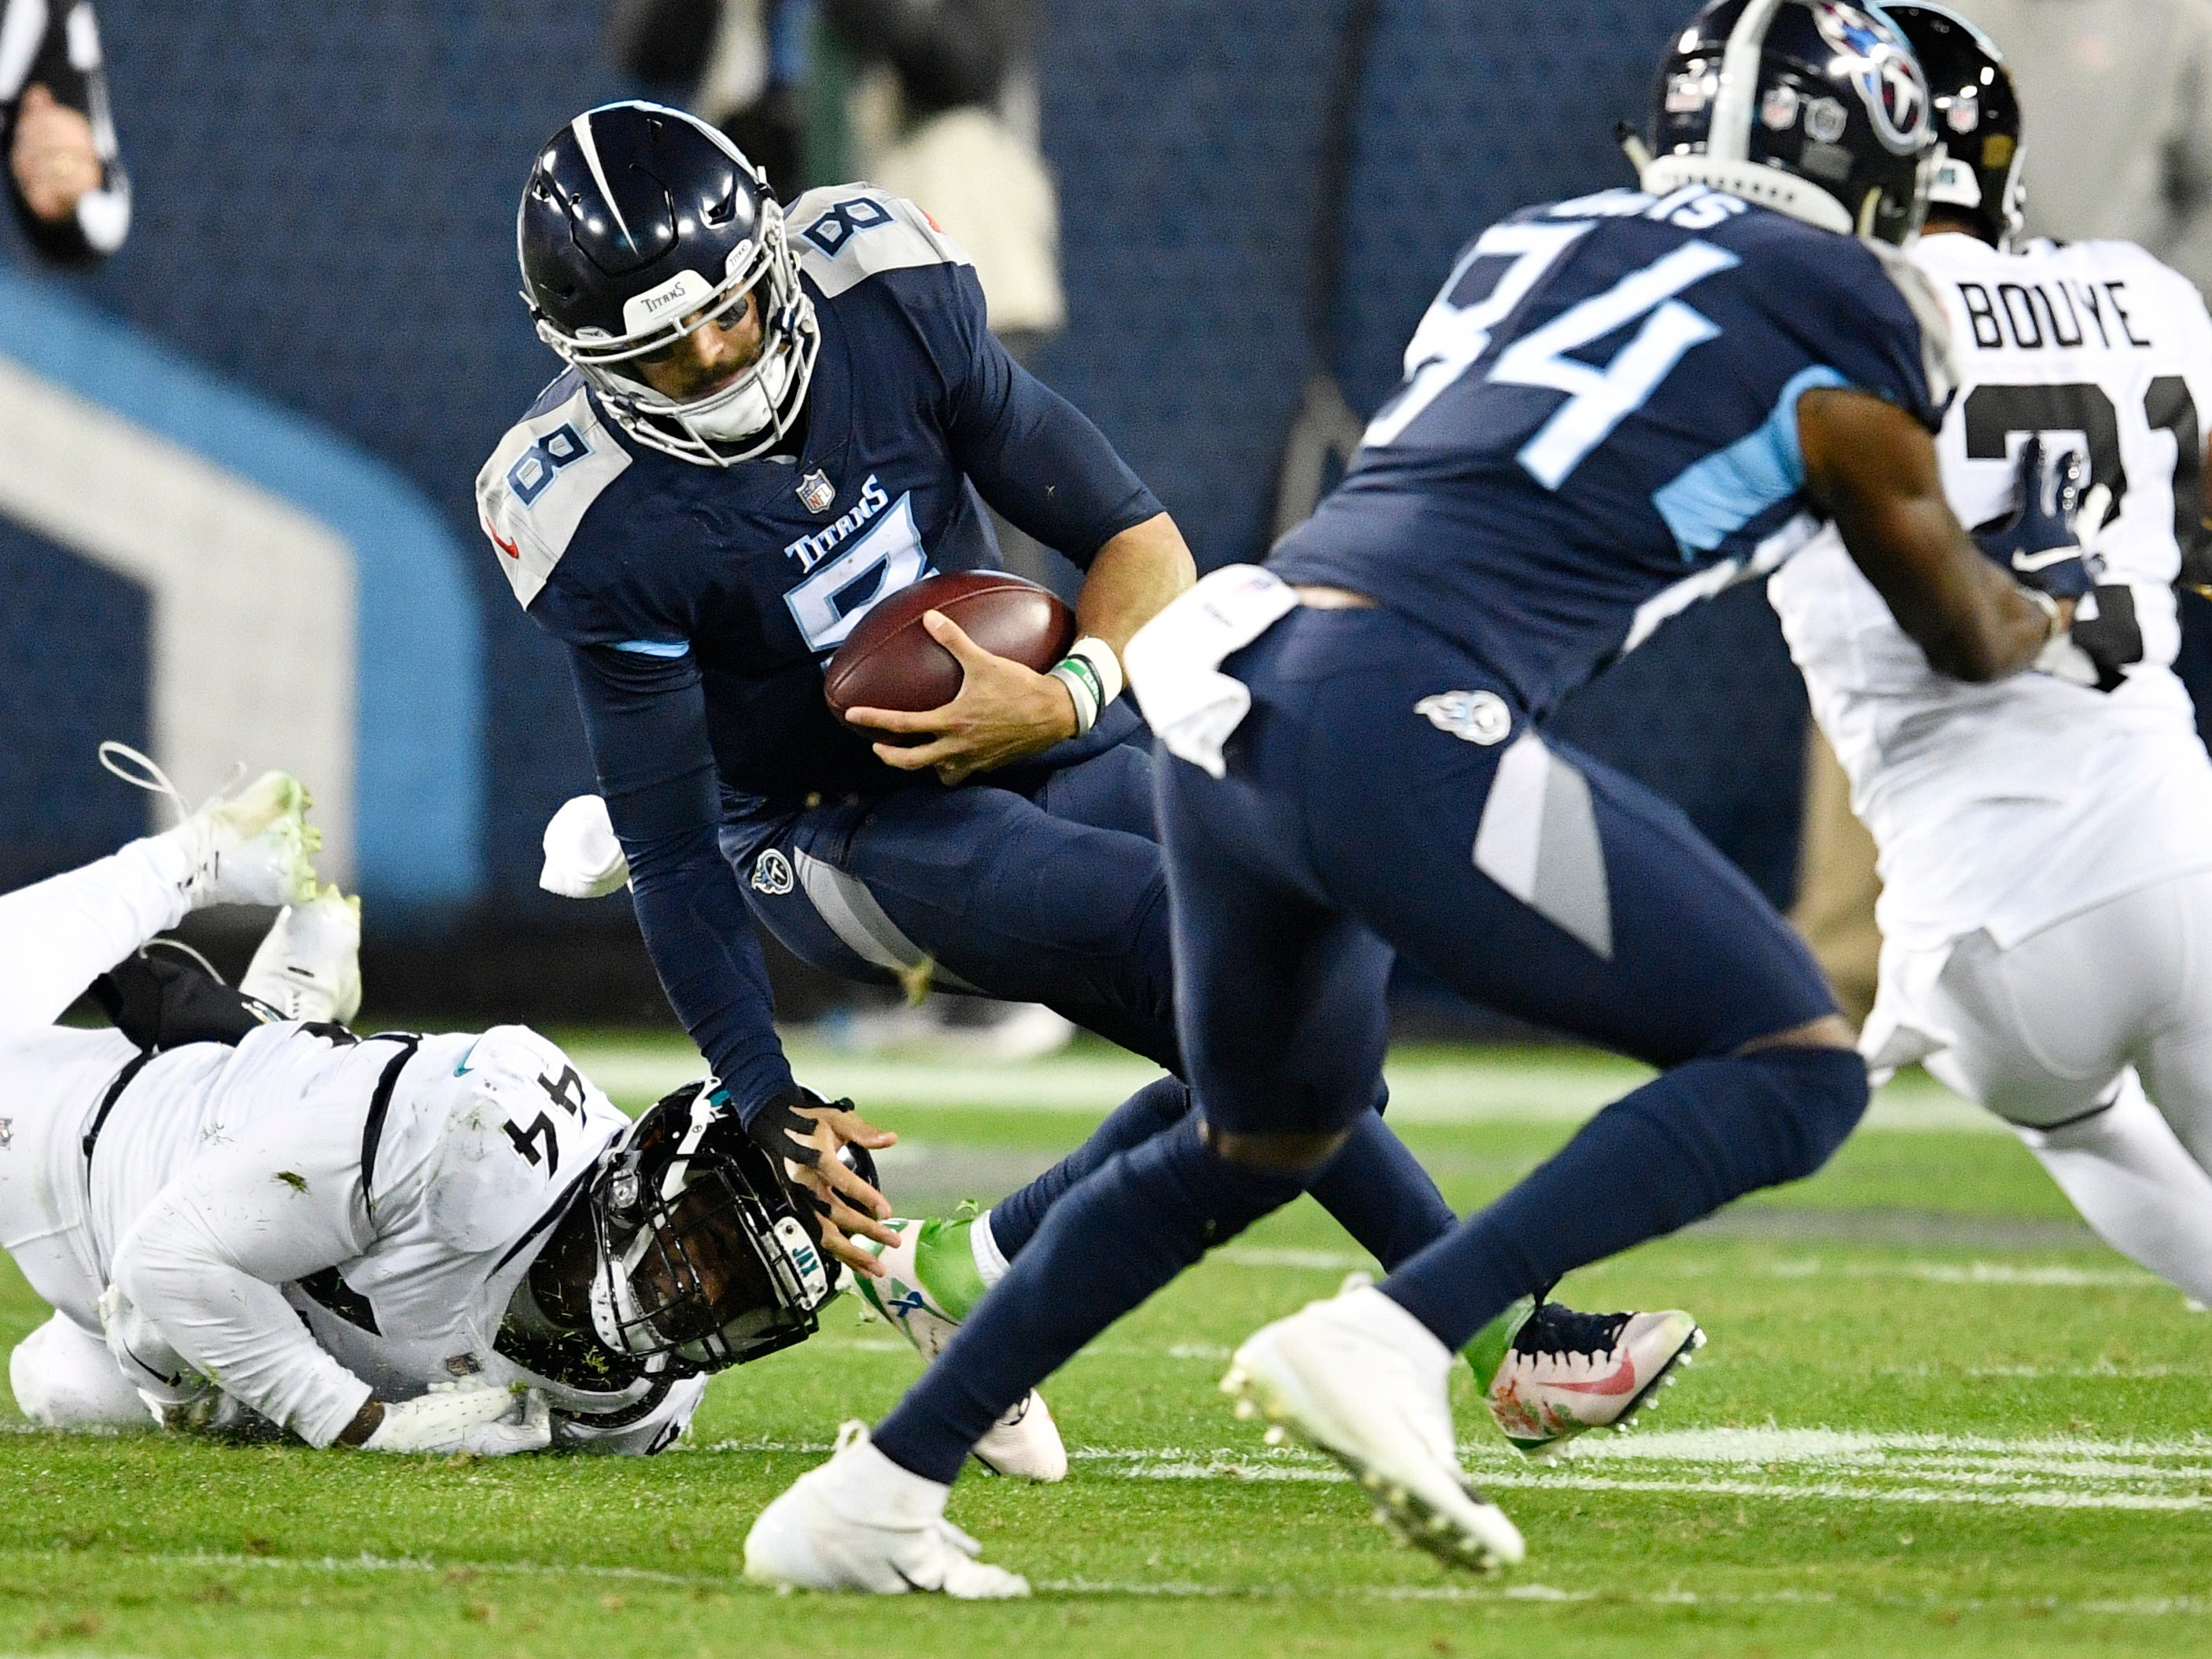 Titans quarterback Marcus Mariota (8) is brought down on a keeper in the second quarter at Nissan Stadium Thursday, Dec. 6, 2018, in Nashville, Tenn.